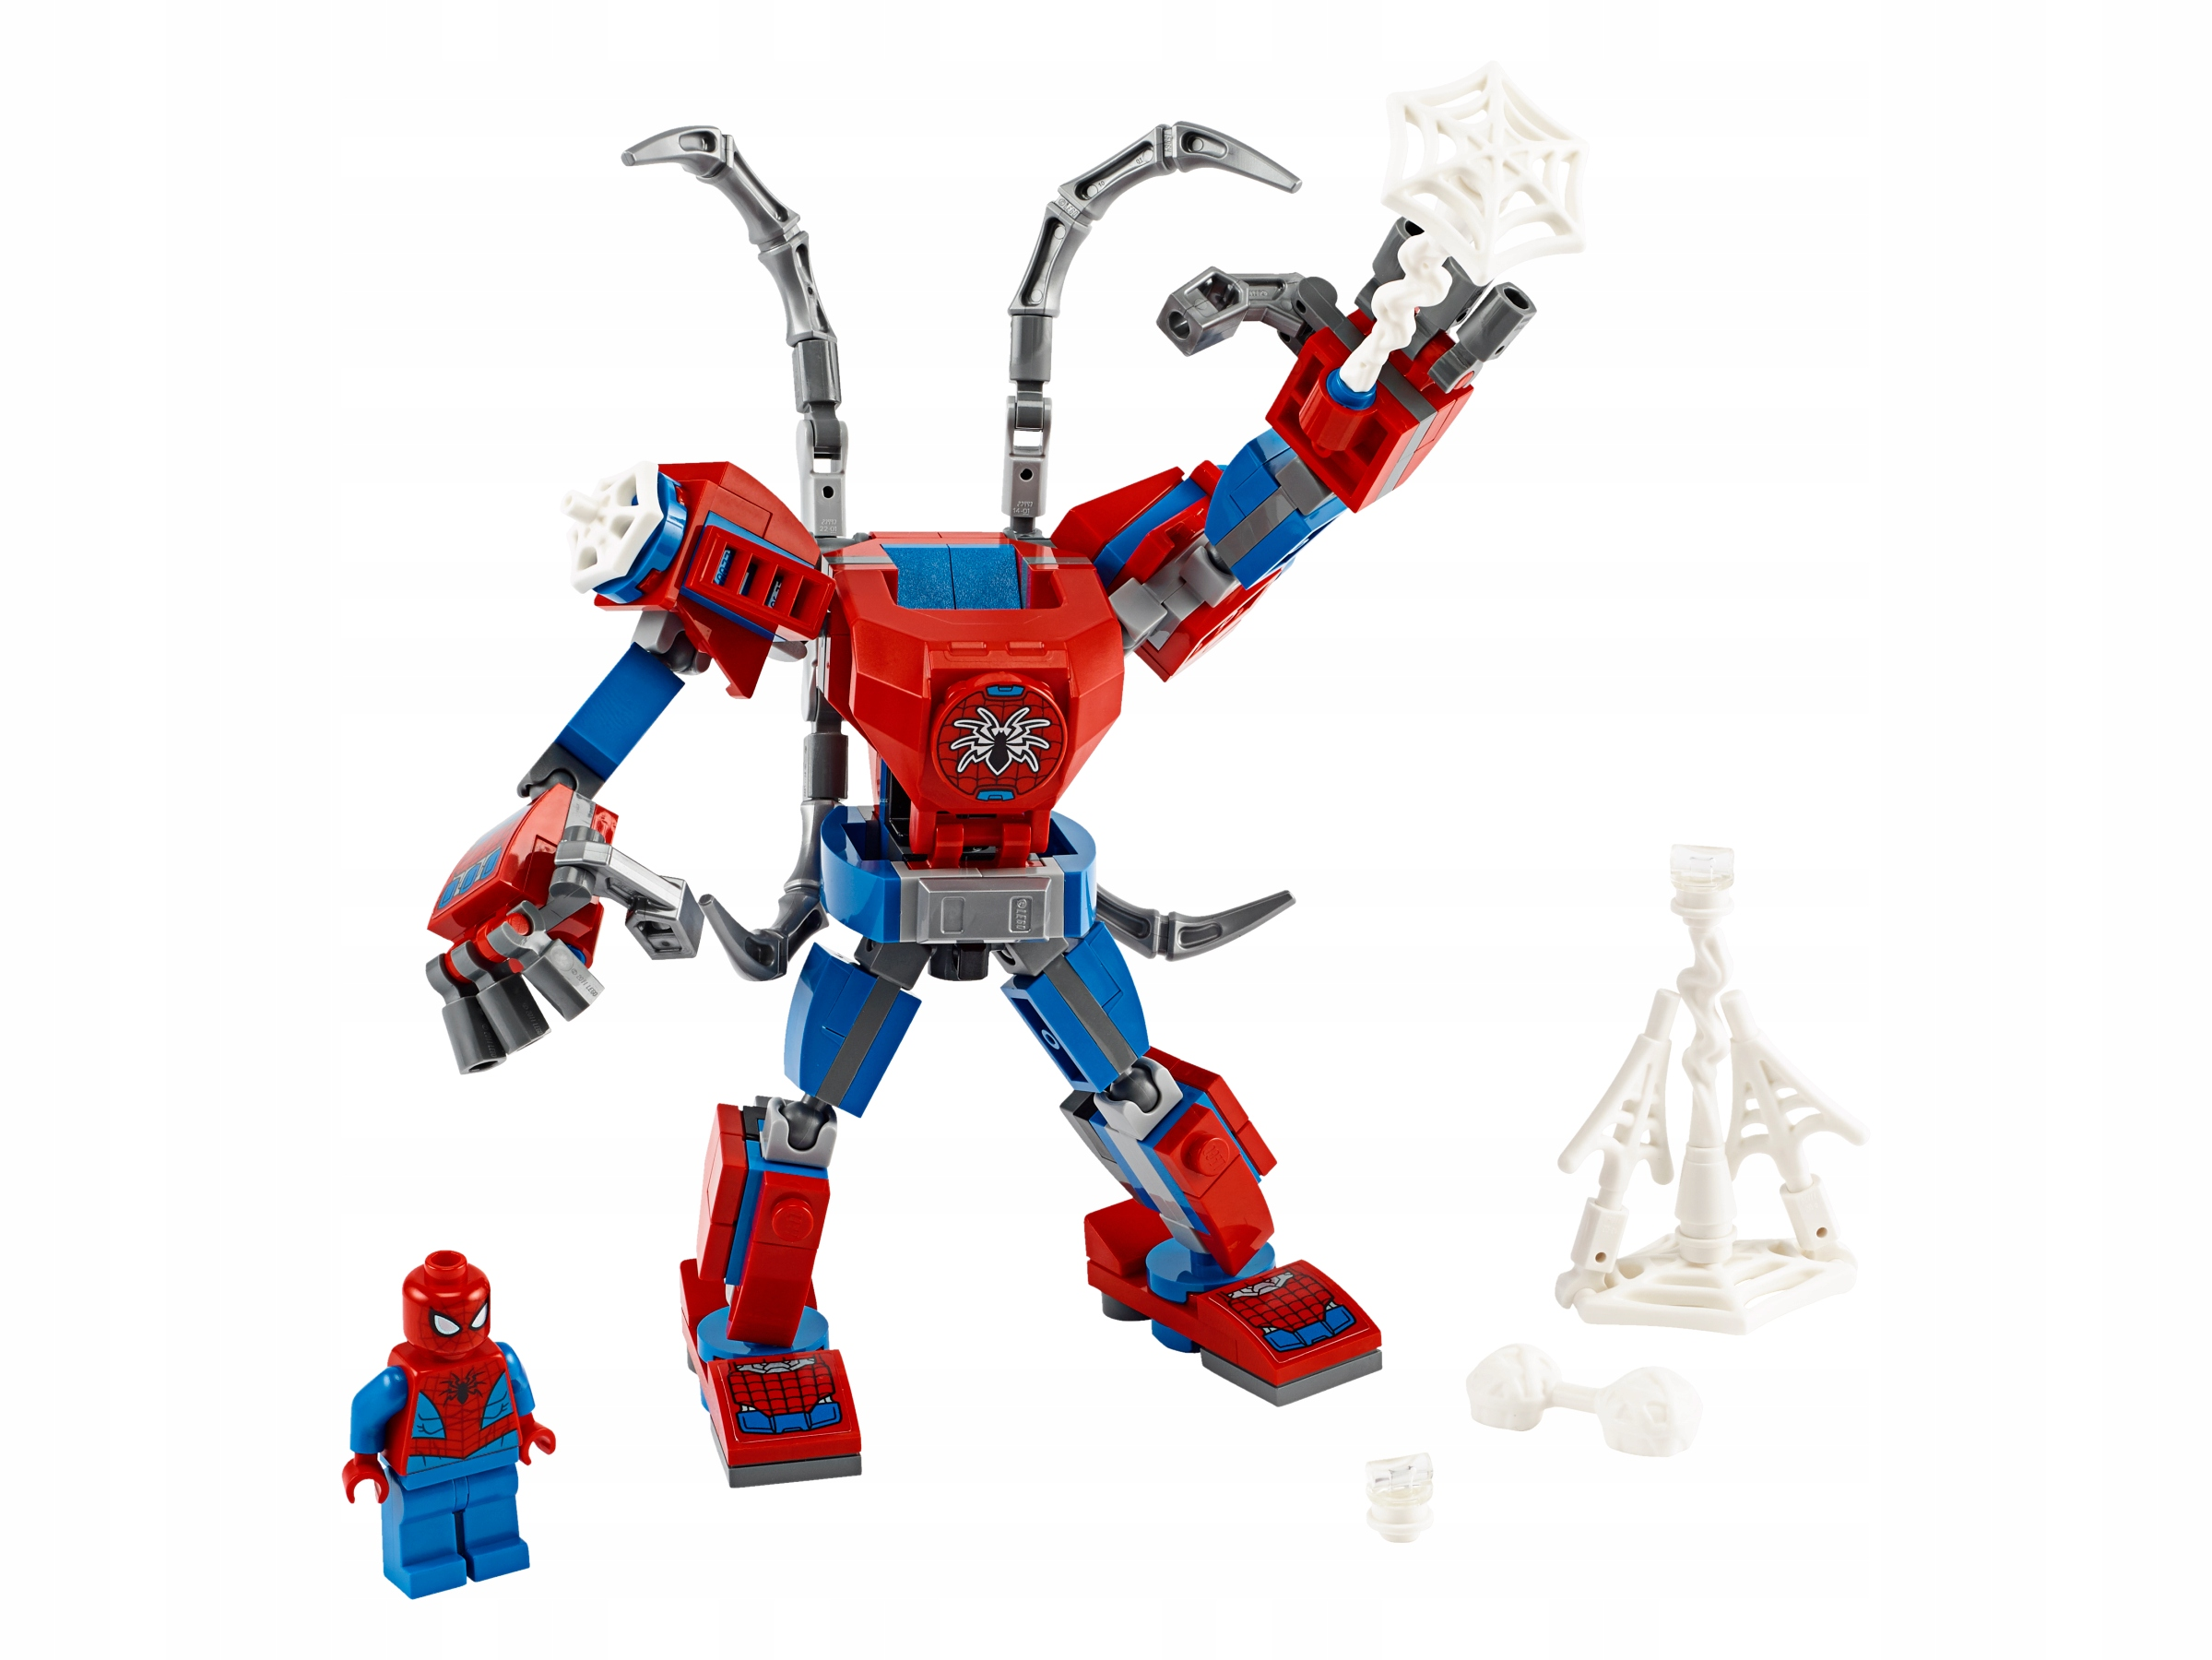 LEGO Super Heroes Mech Spider-Mana 76146